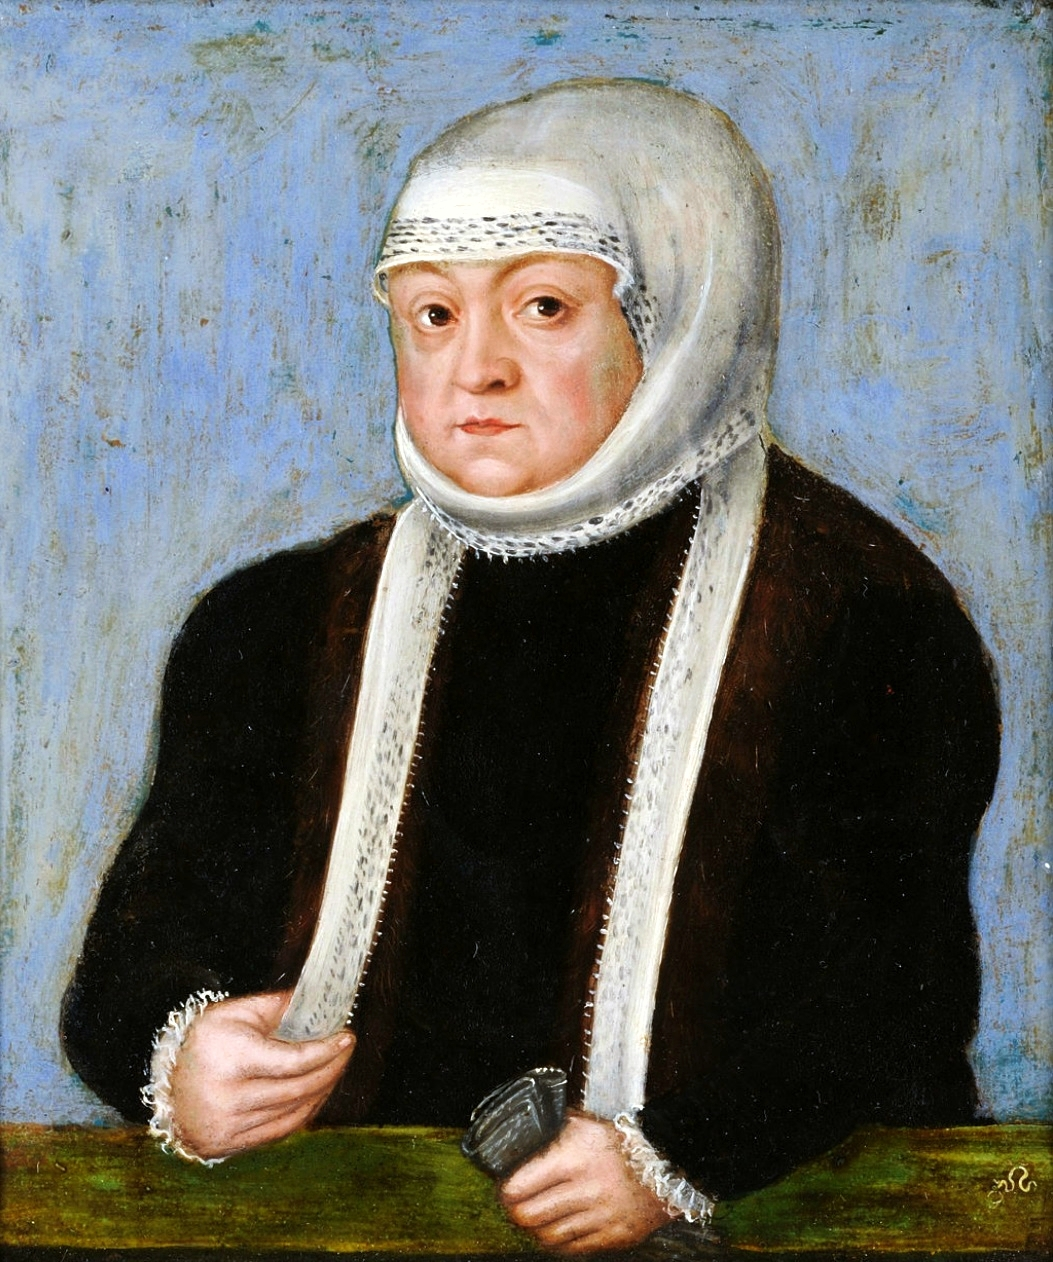 Cranach_the_Younger_Bona_Sforza.jpg